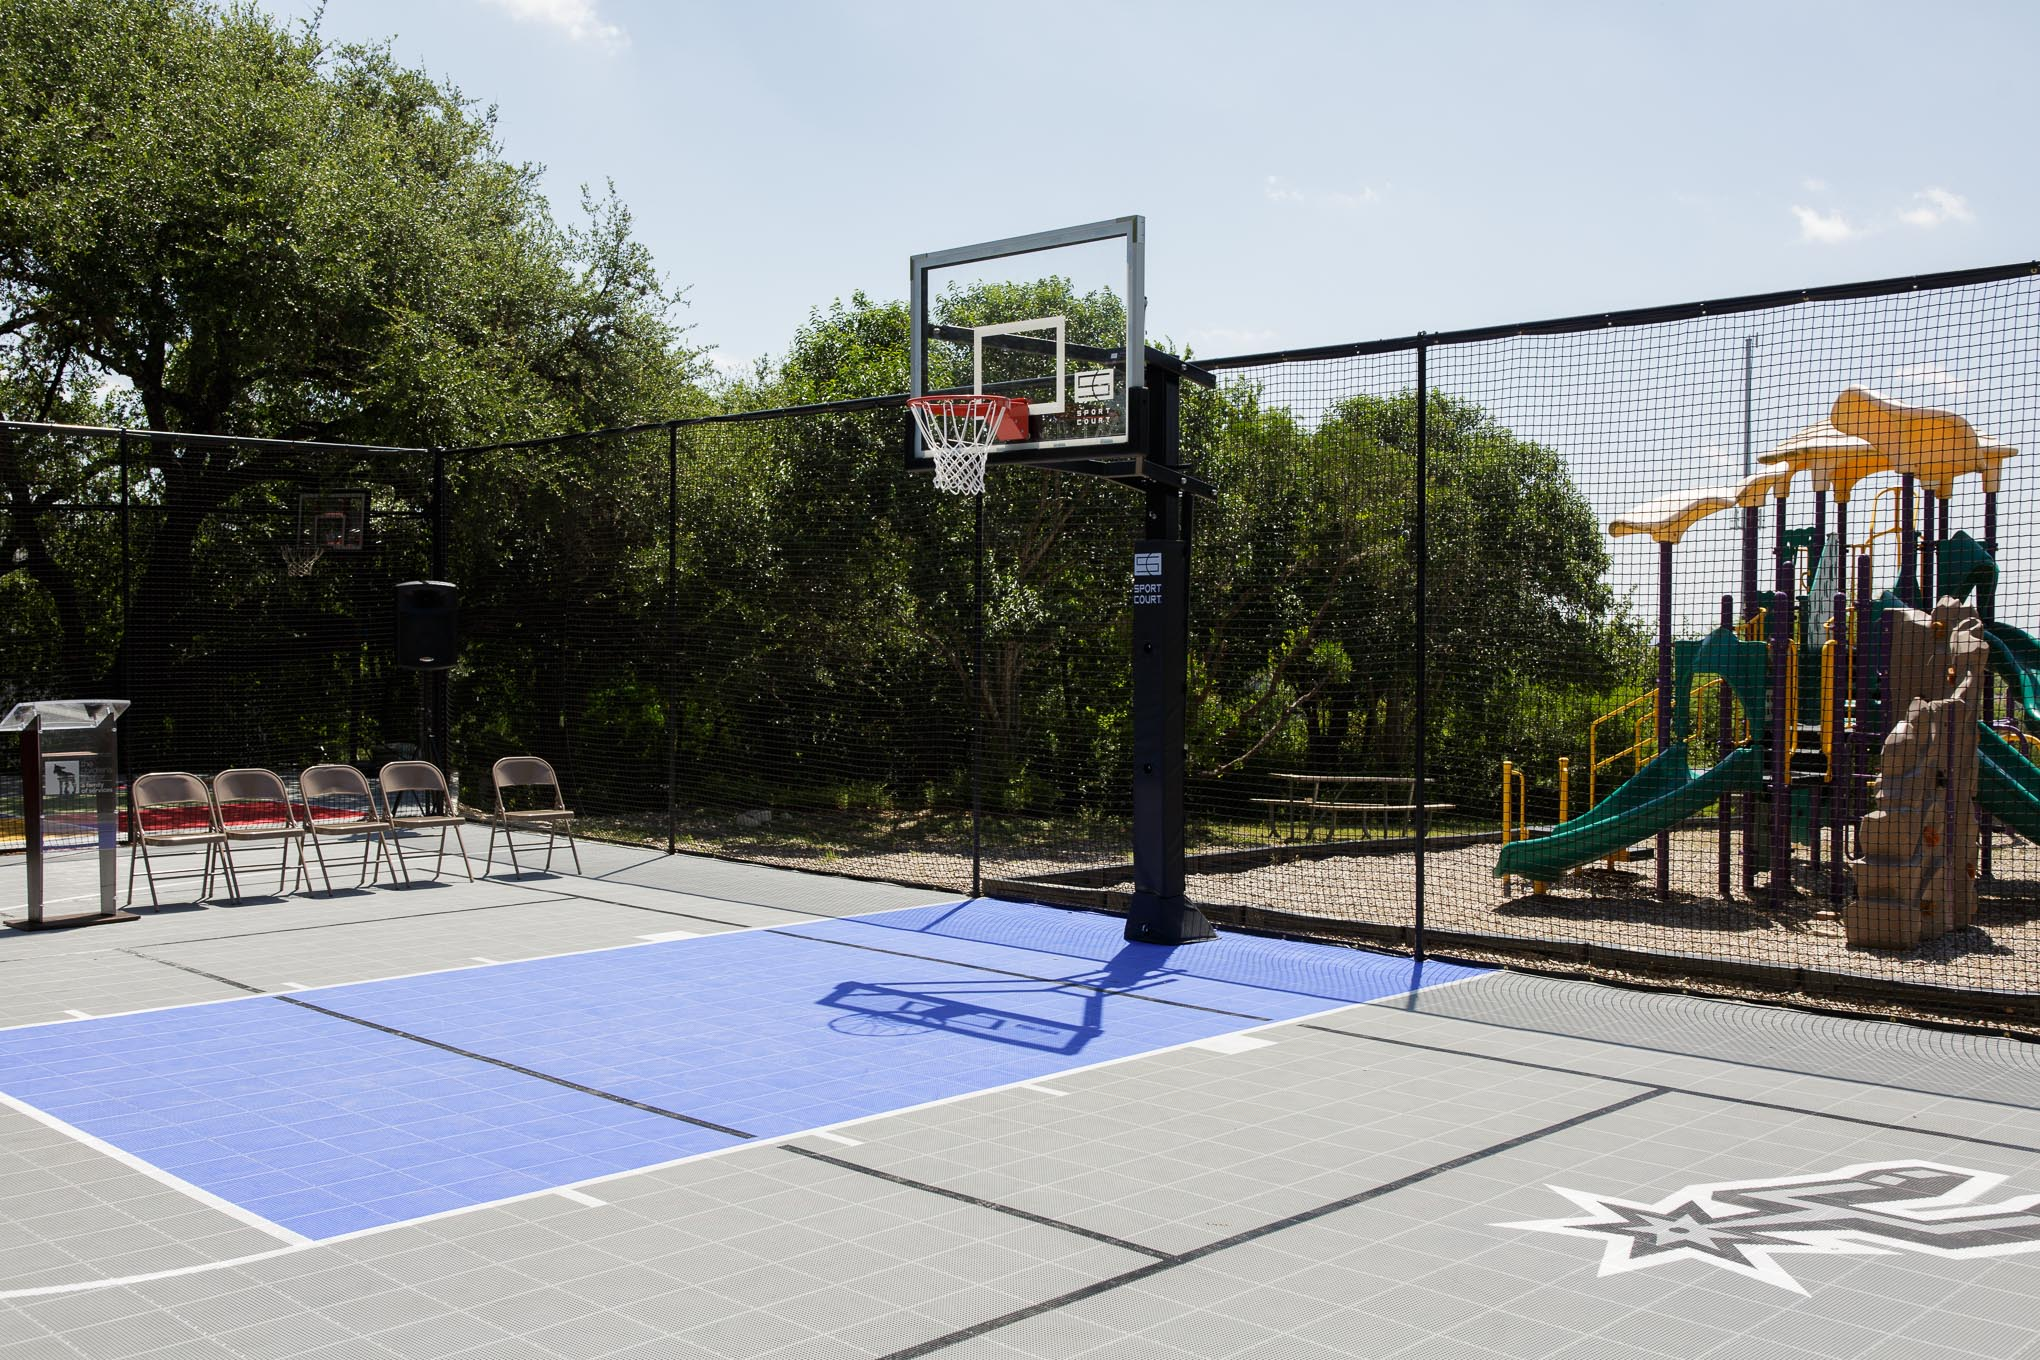 The new basketball court at the Children's Shelter Residential Treatment Center is adorned with the Spurs logo. Photo by Scott Ball.